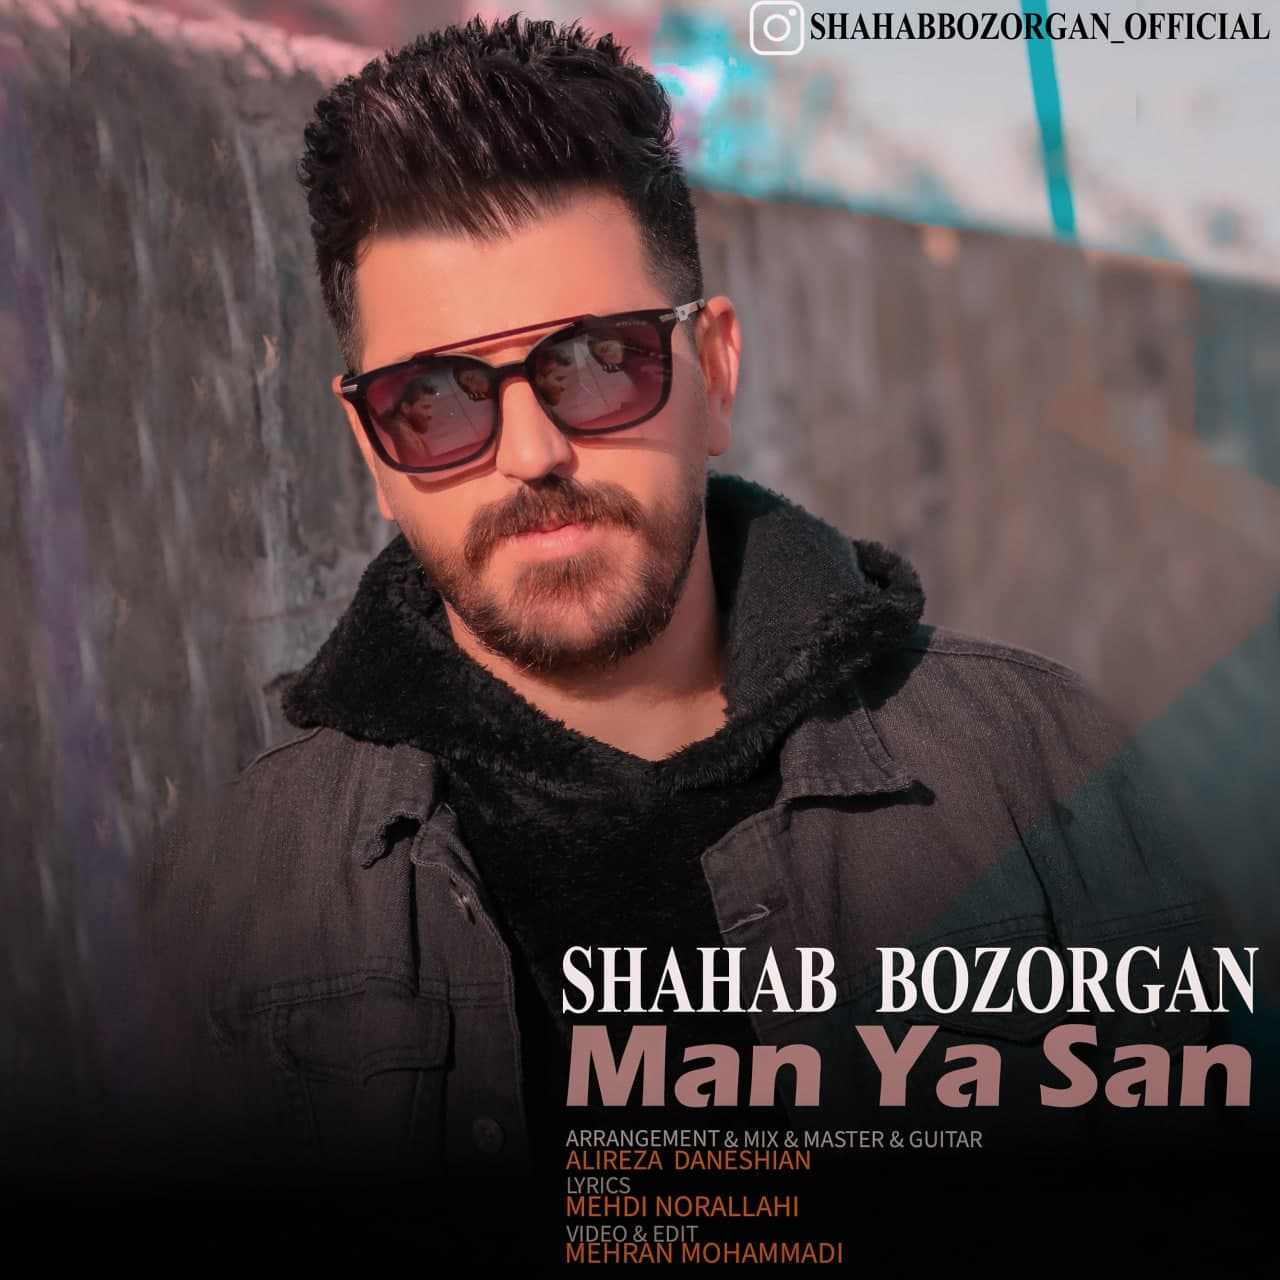 https://s16.picofile.com/file/8426282700/17Shahab_Bozorgan_Man_Ya_San.jpg